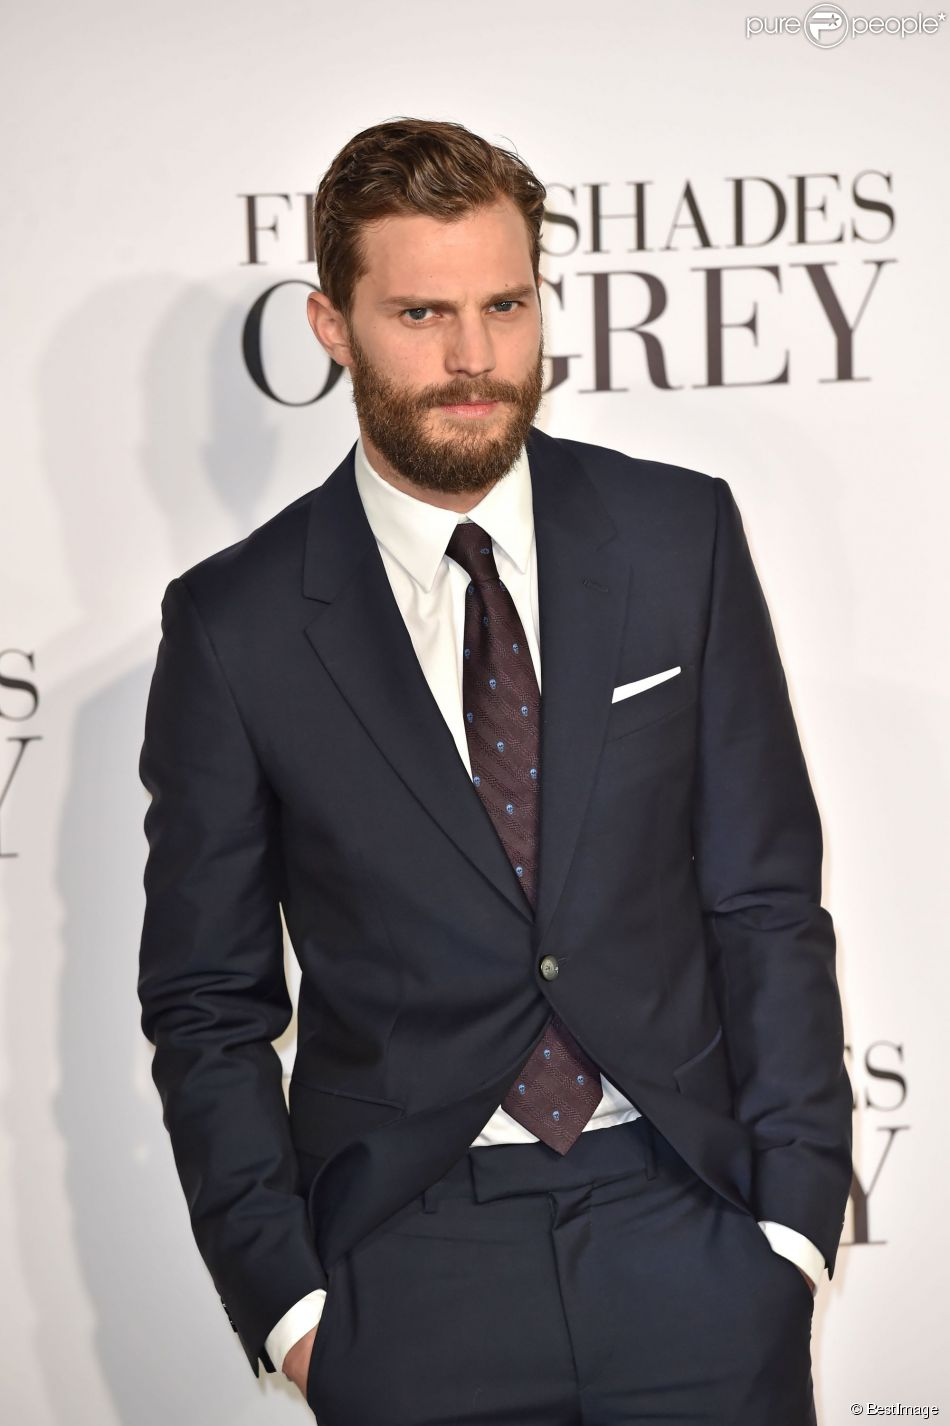 50 shades of grey jamie dornan quittant la franchise sa r ponse. Black Bedroom Furniture Sets. Home Design Ideas